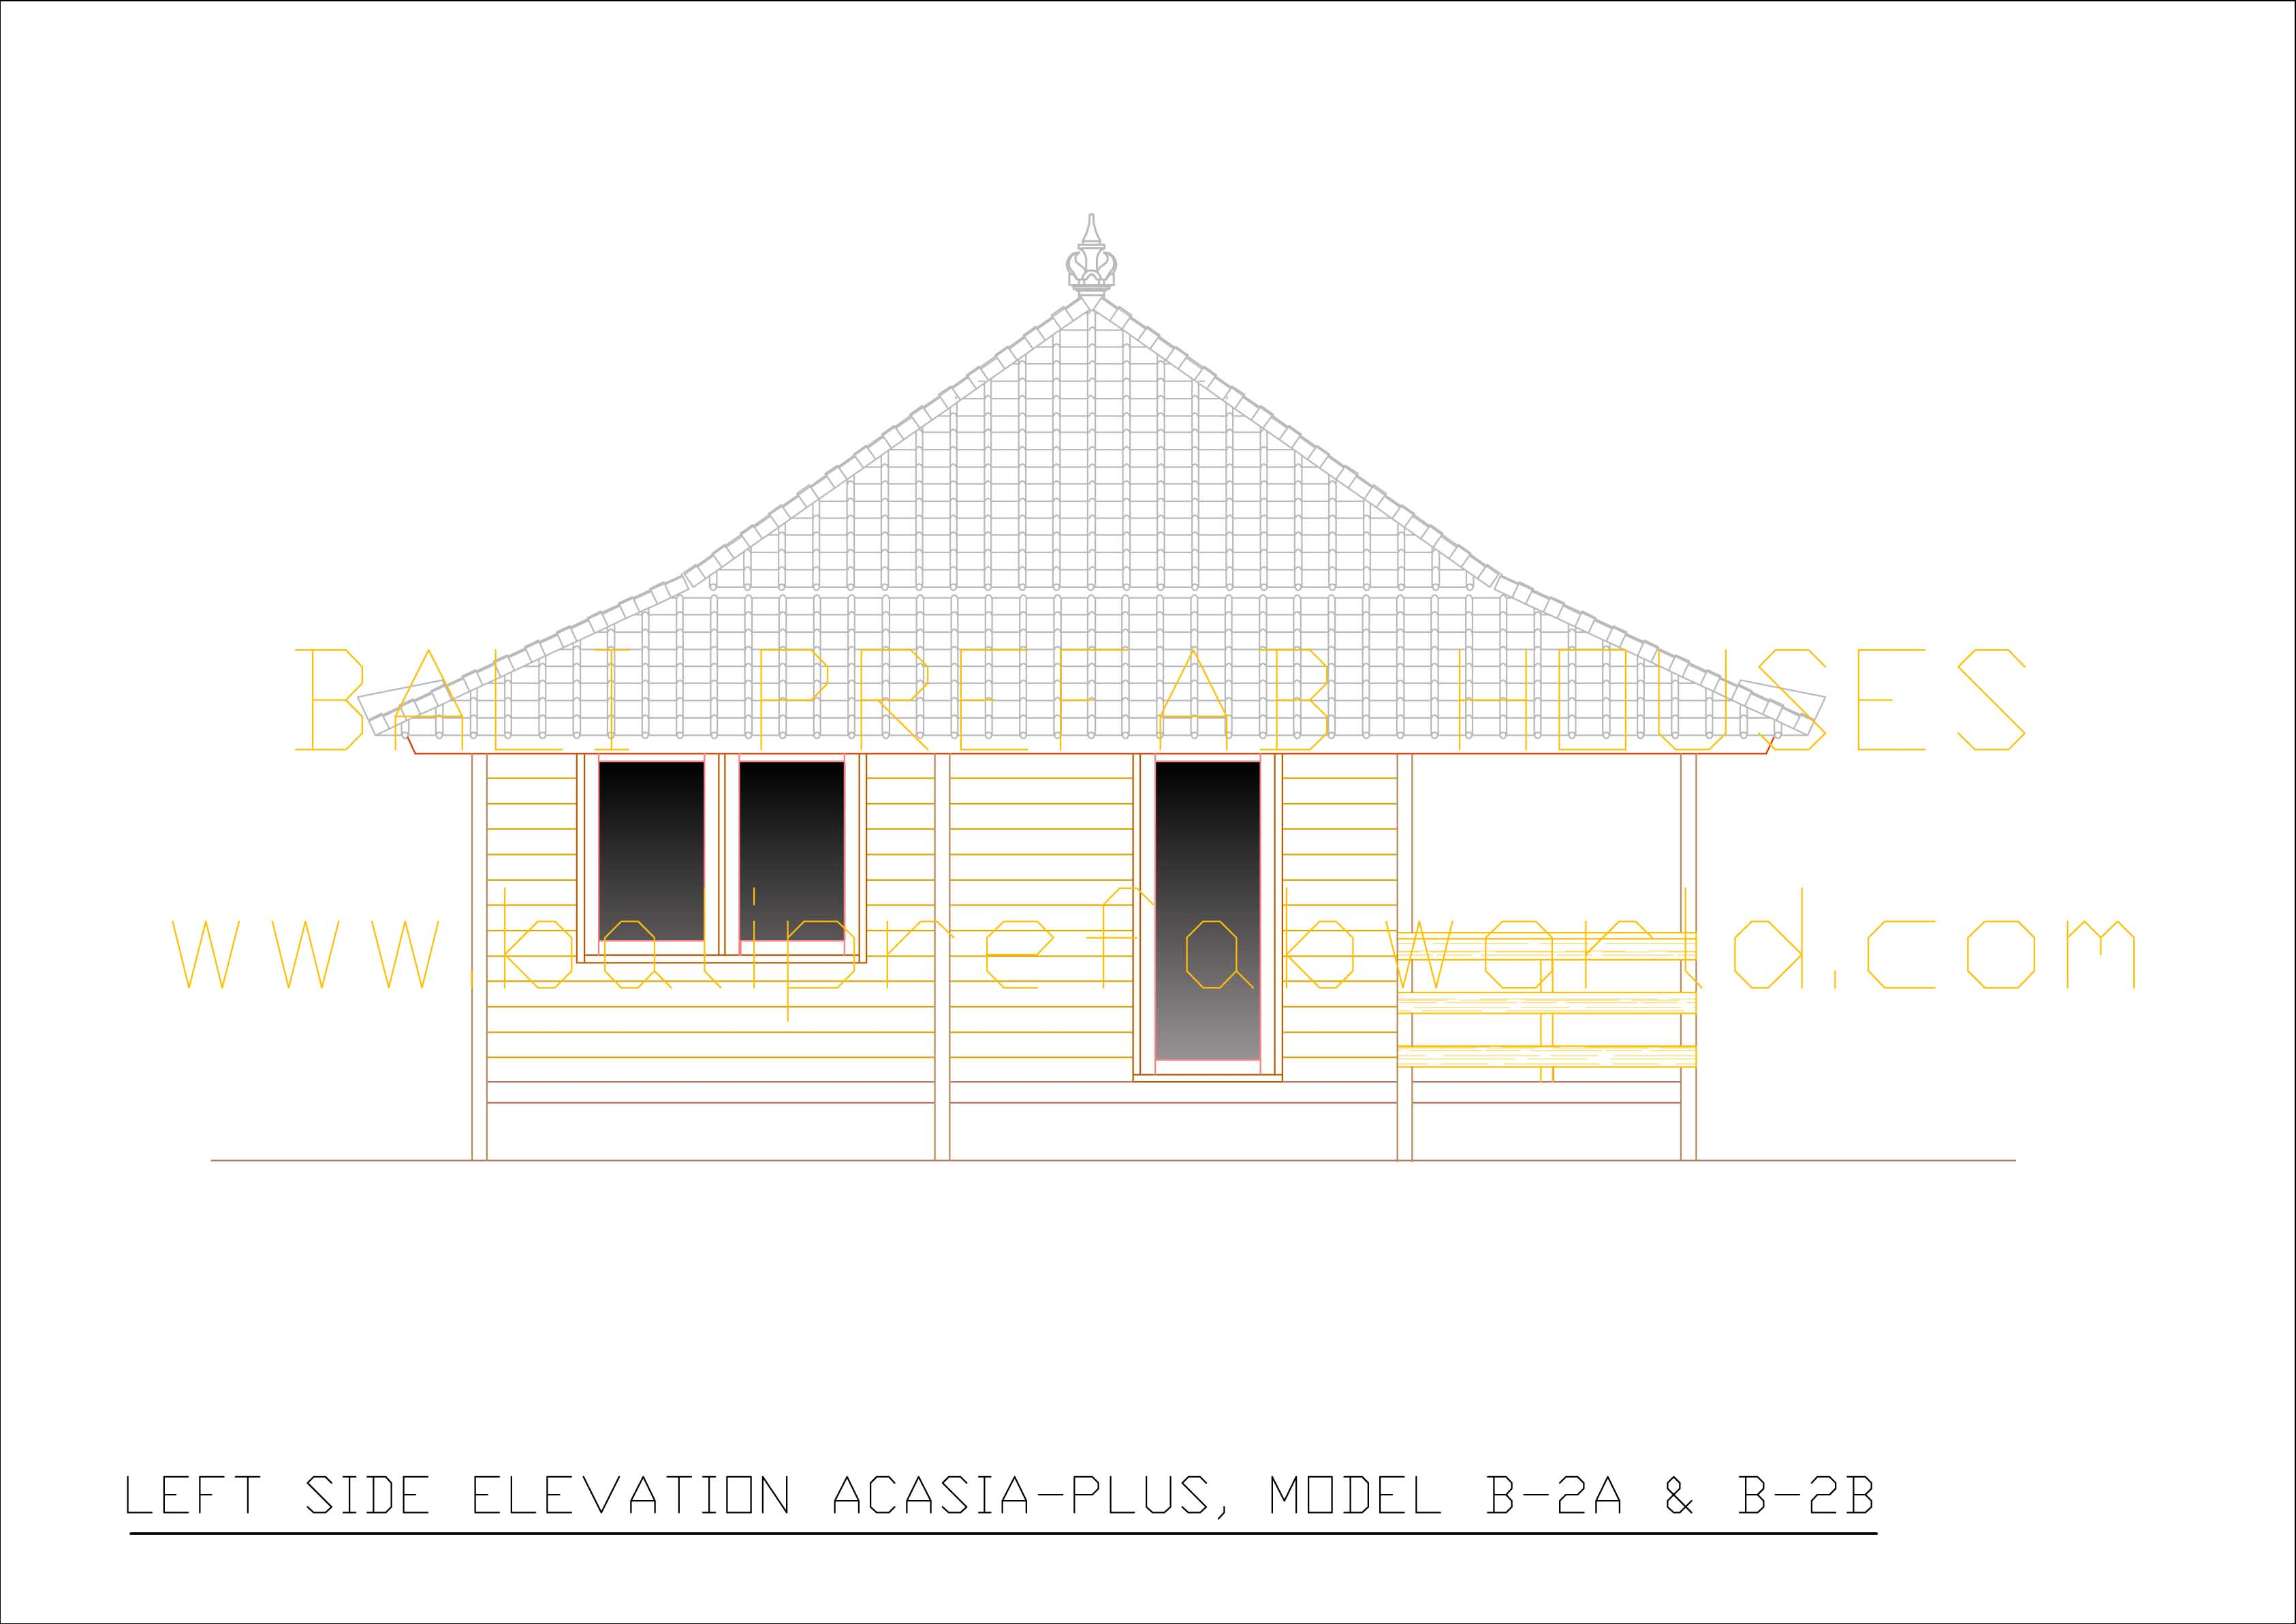 Acasia-plus left side elevation